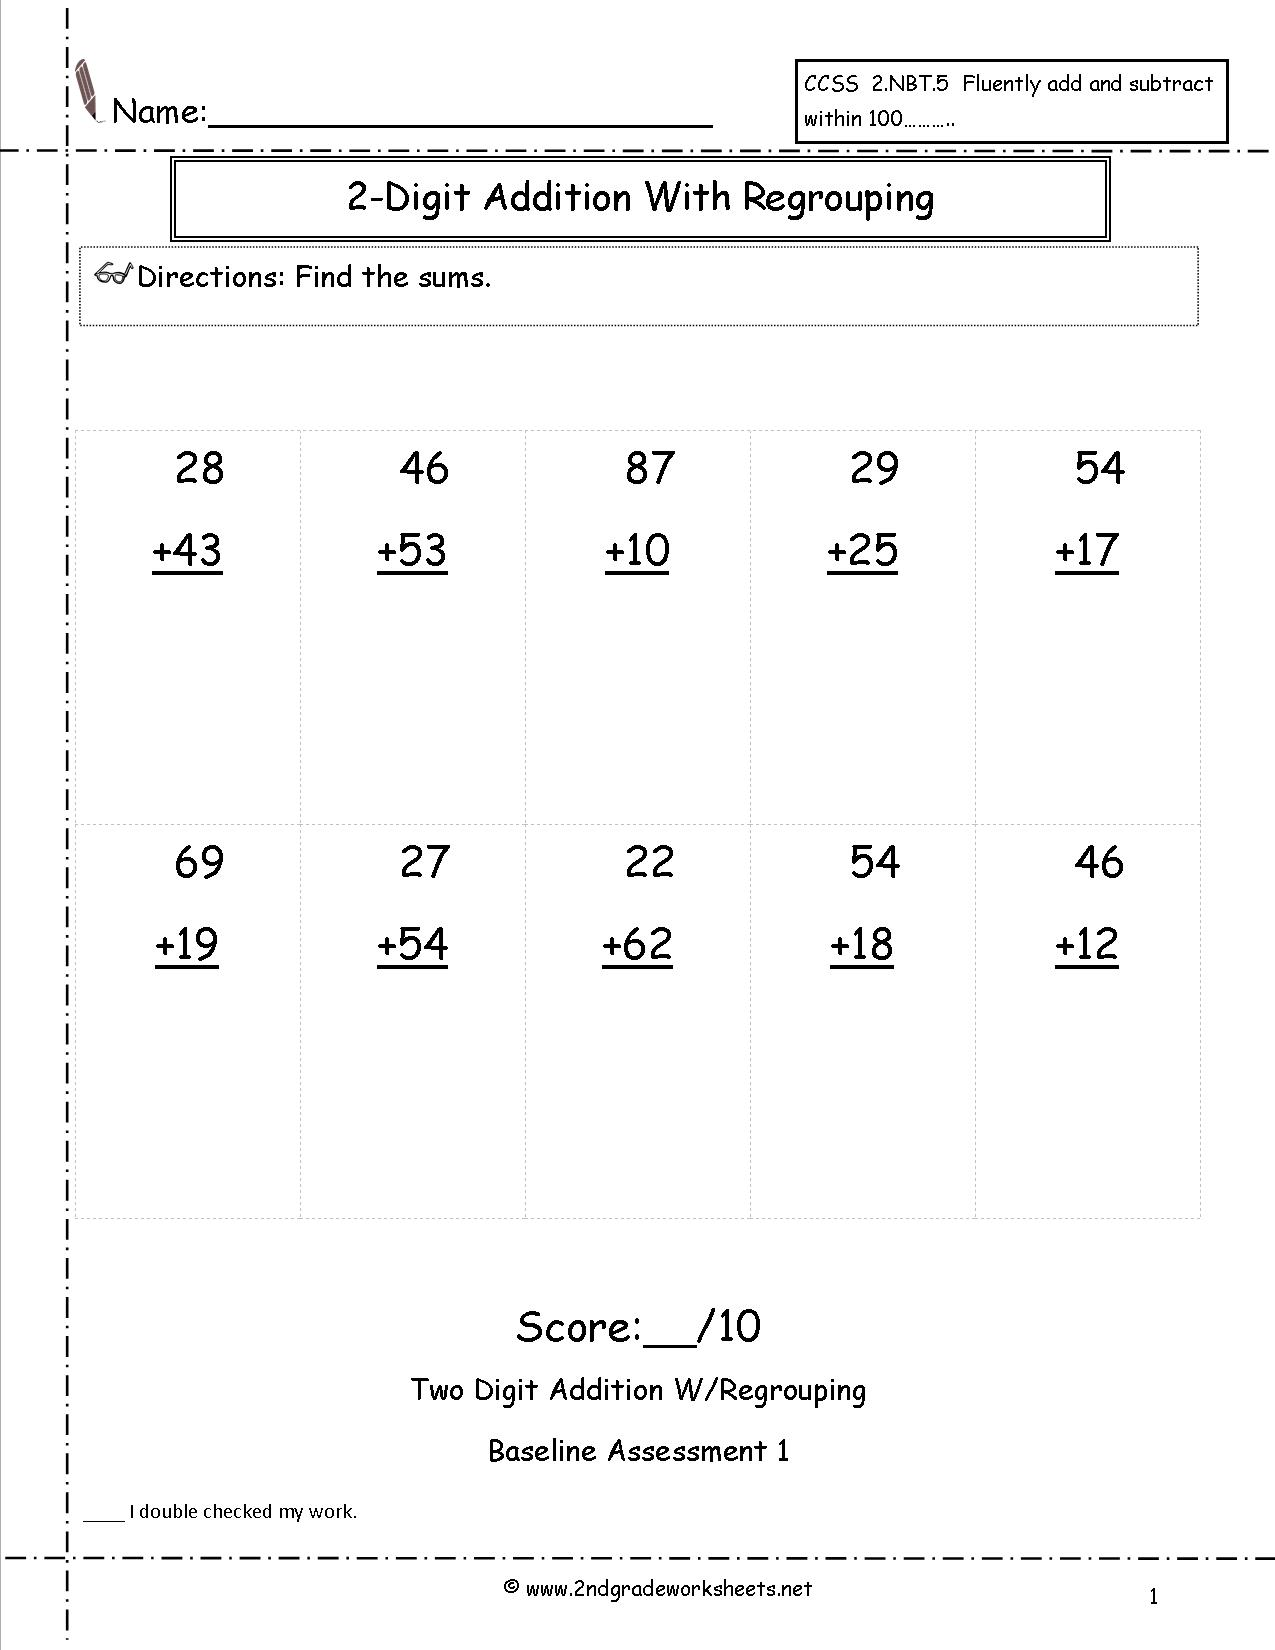 17 Best Images Of Saxon Math Grade 2 Worksheets